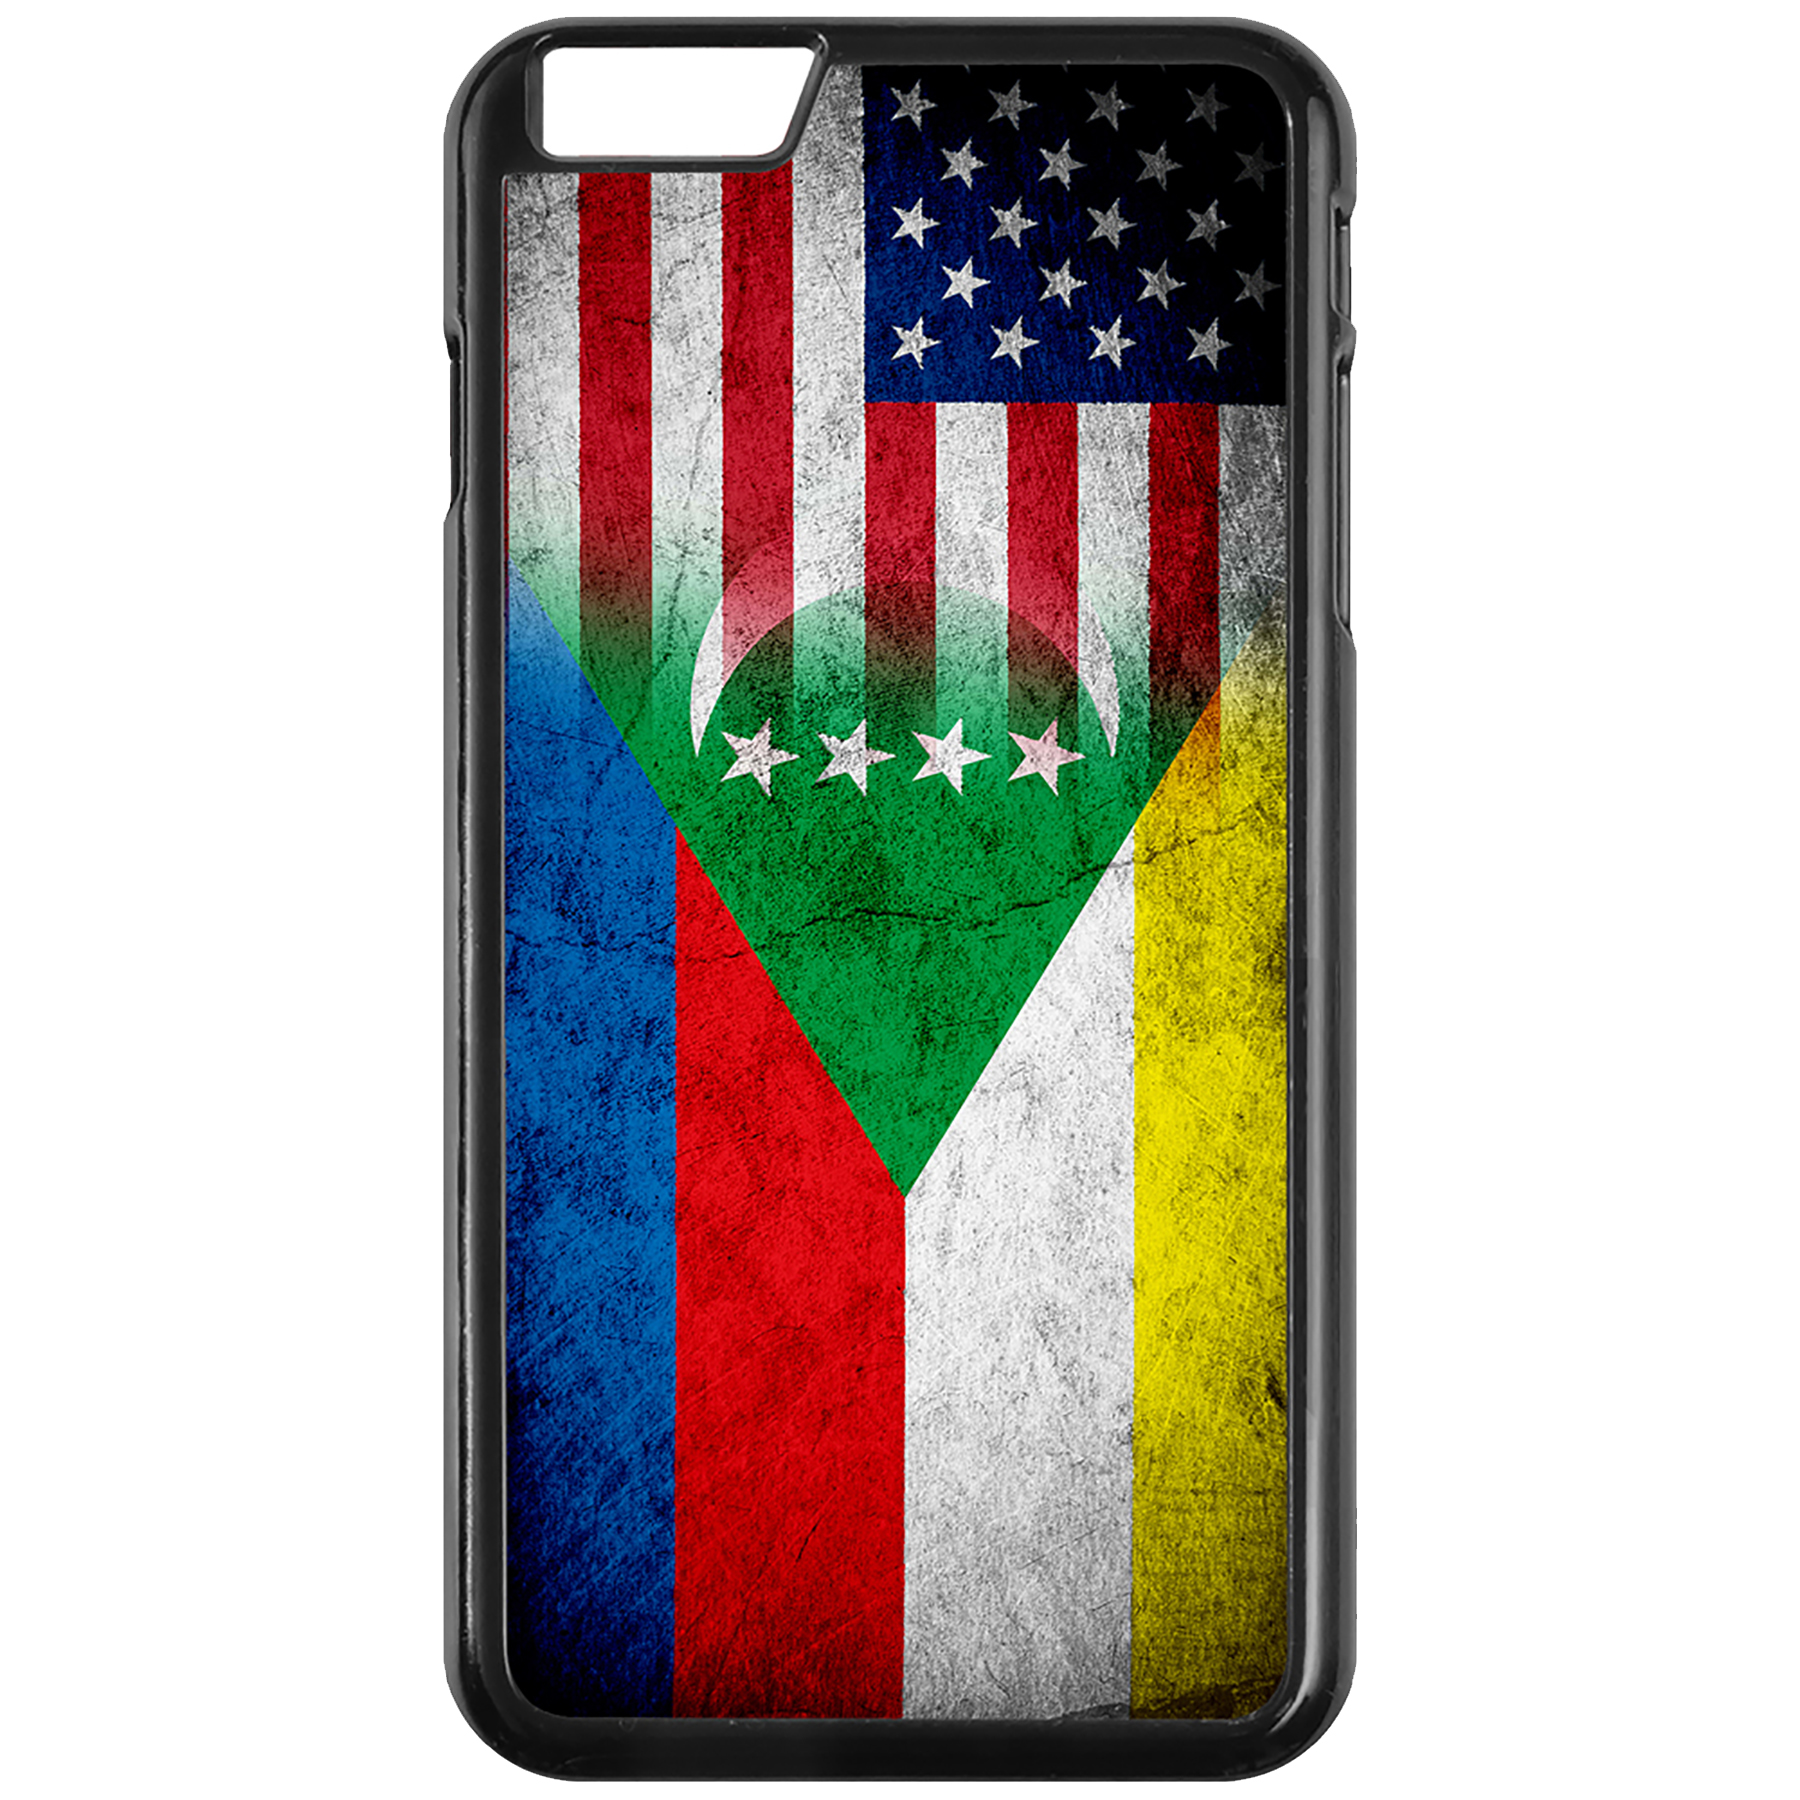 Apple-iPhone-Case-with-Flag-of-Comoros-Comorian-Many-Design-Options thumbnail 83